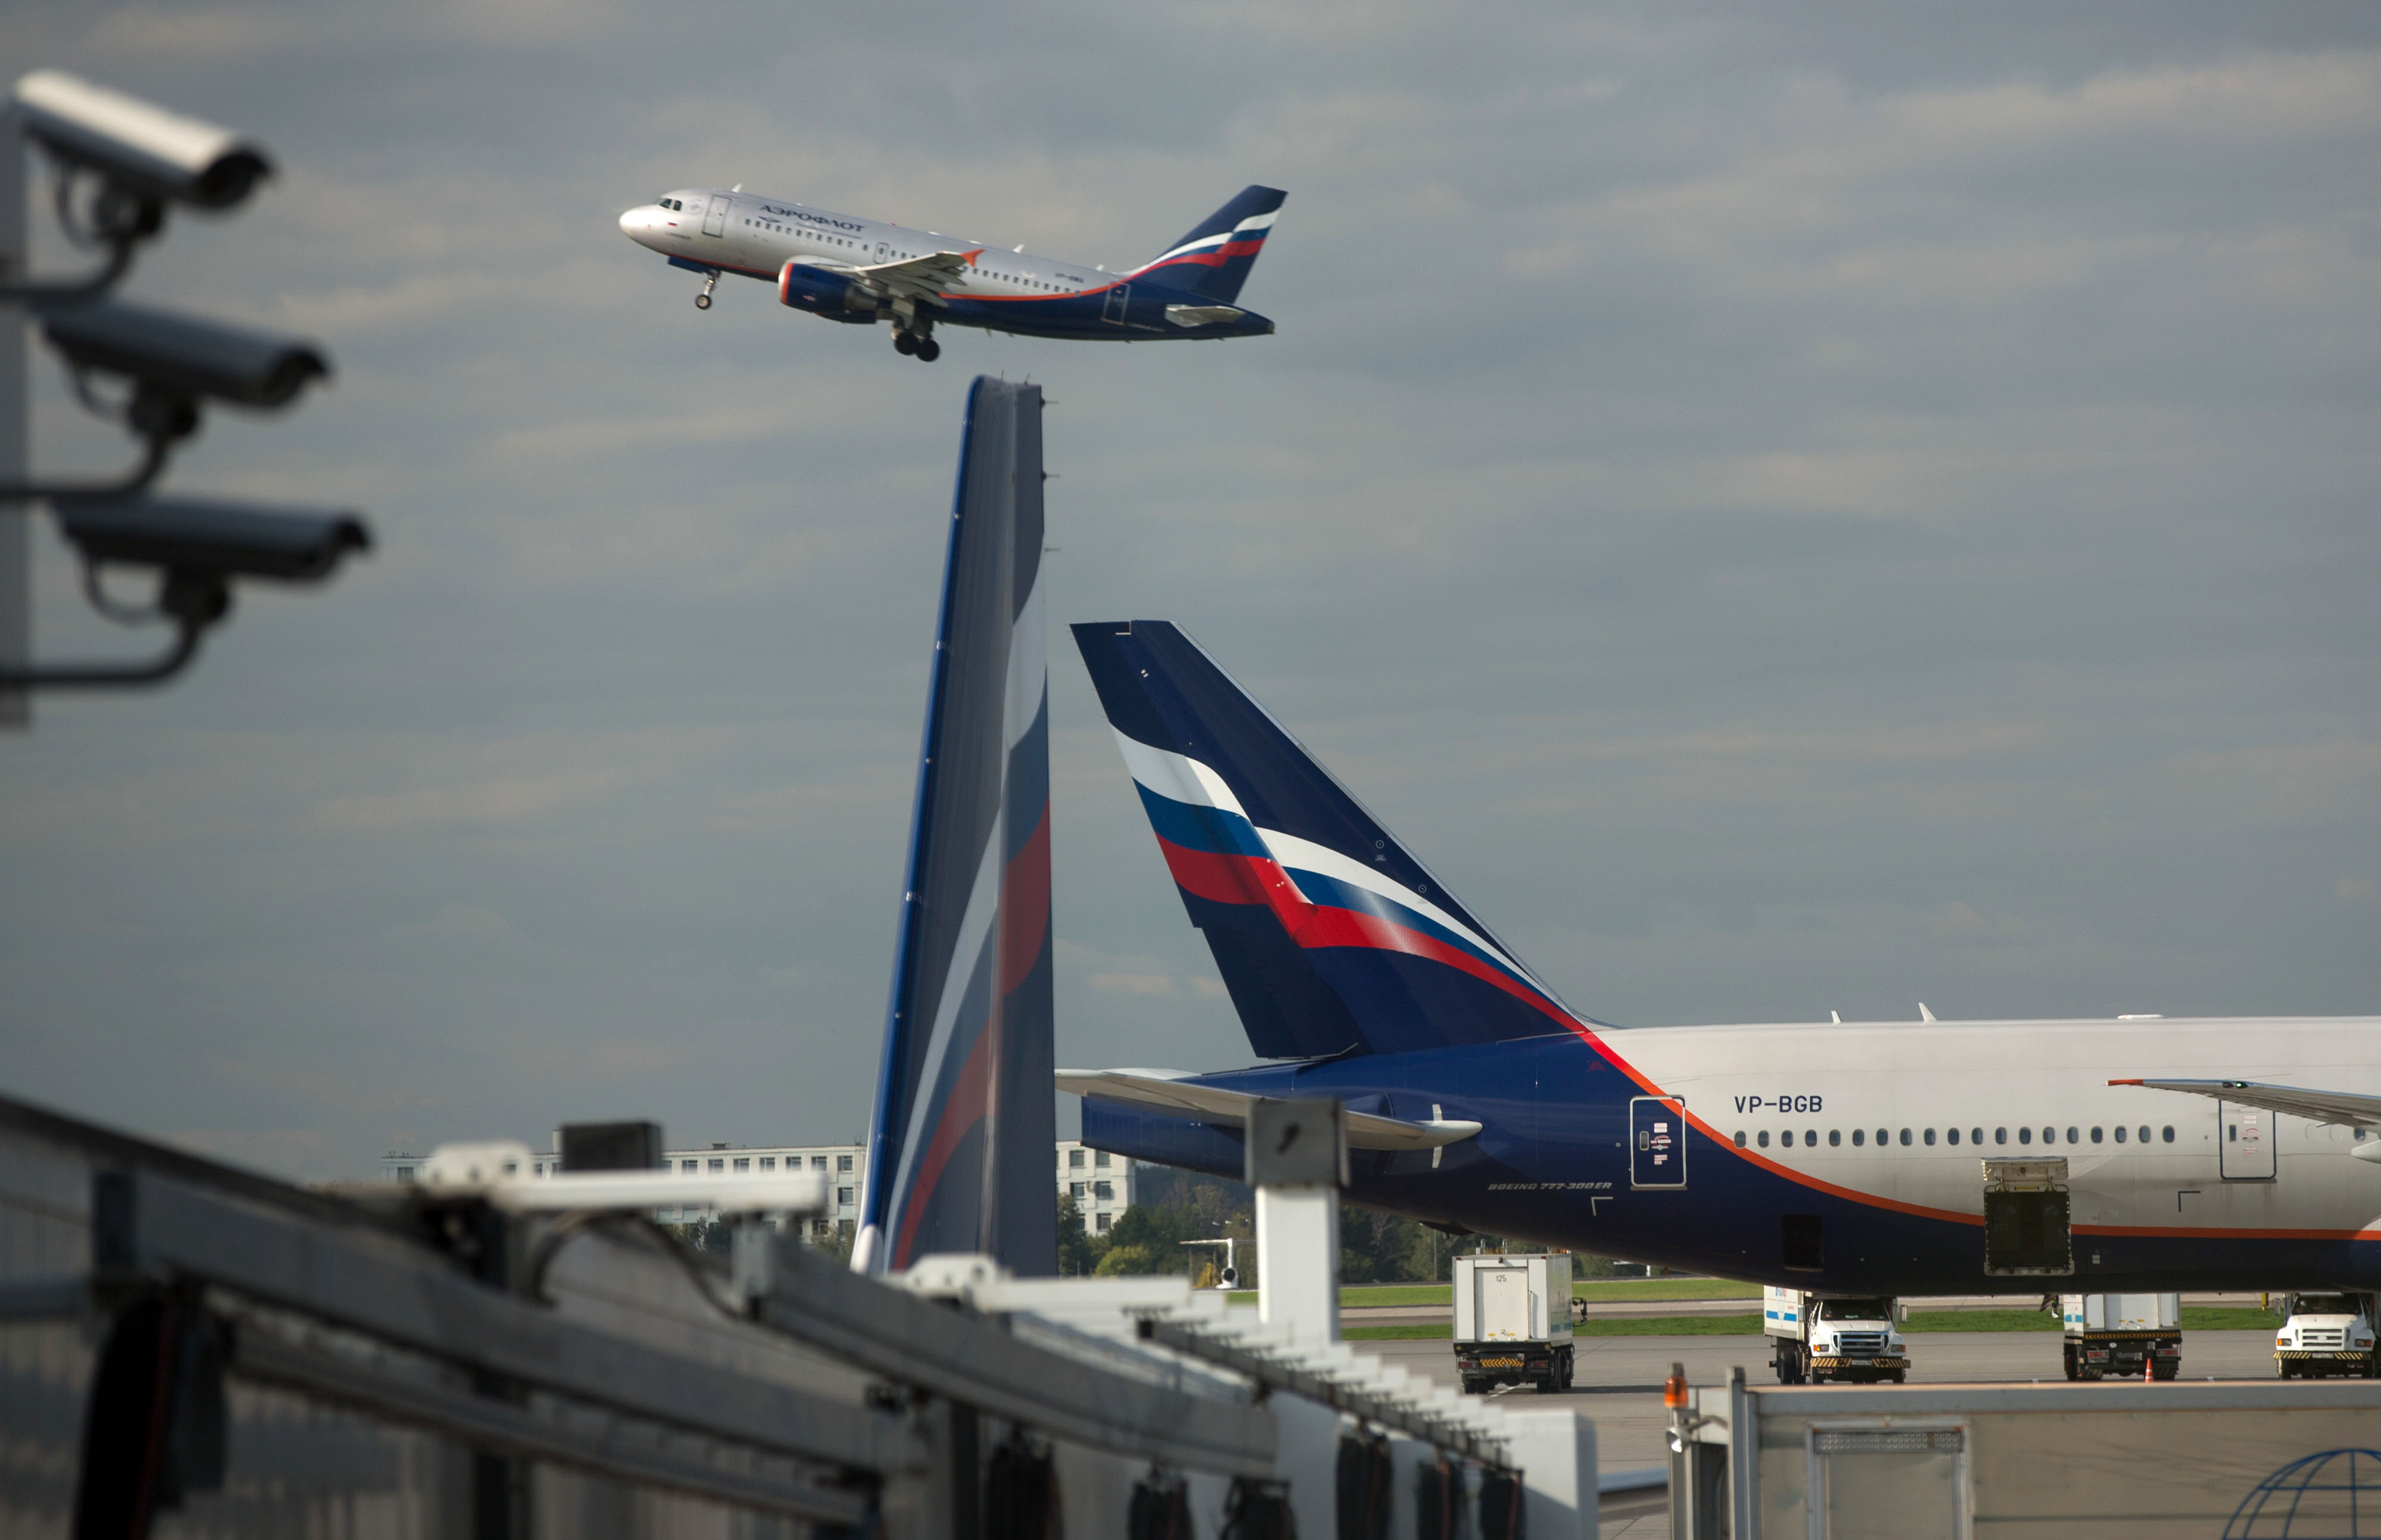 A passenger jet operated by OAO Aeroflot takes off from Sheremetyevo airport in Moscow, Russia, on Thursday, Sept. 4, 2014.